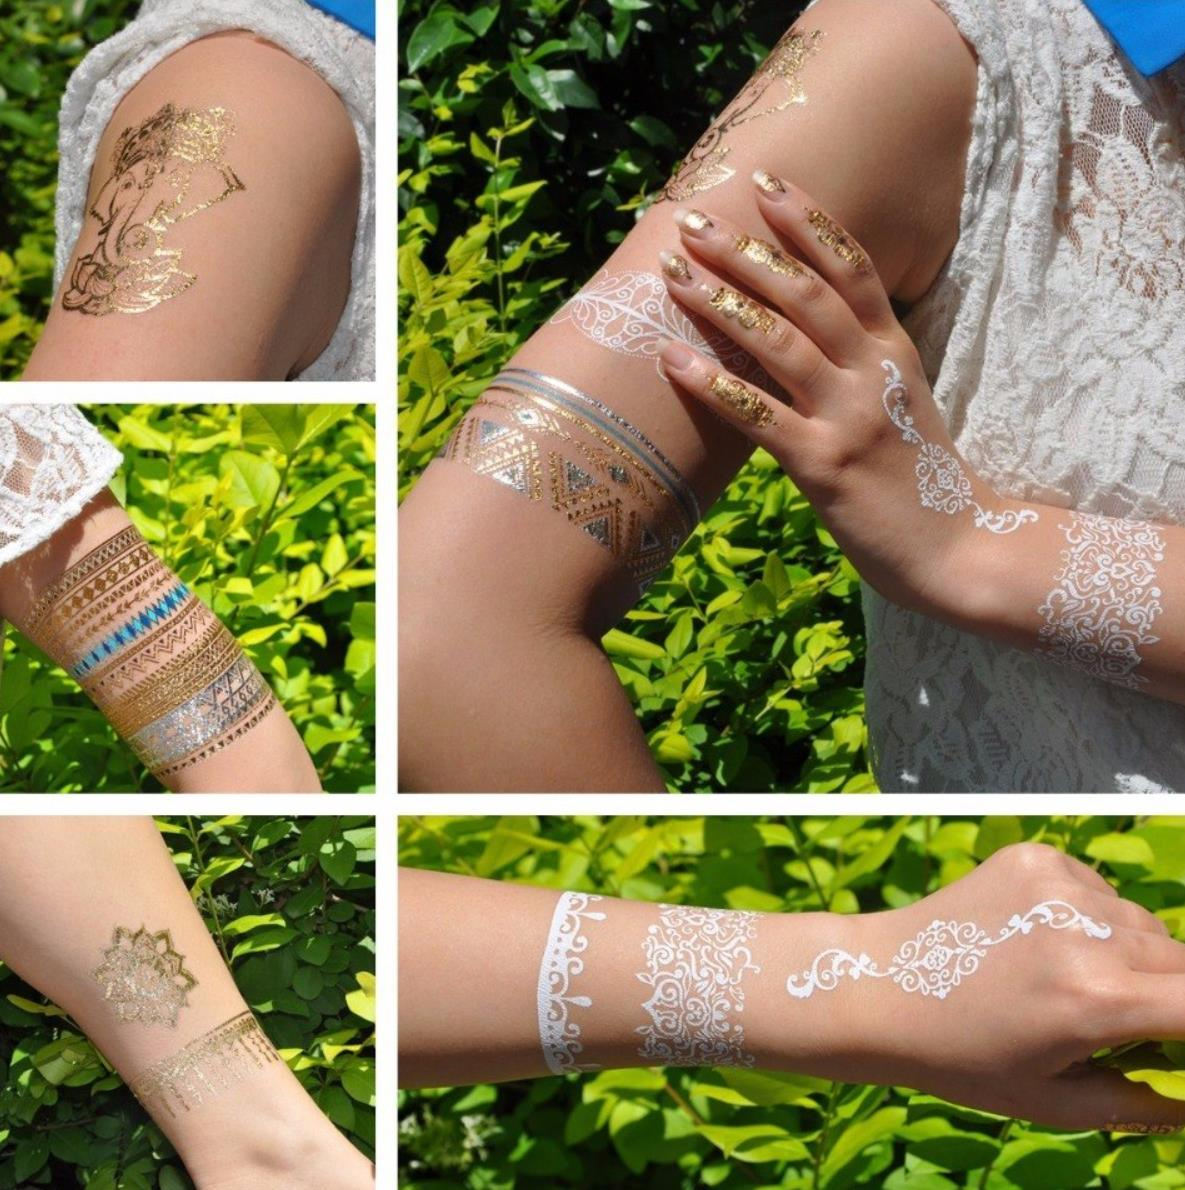 Tattoo Hauttattoo Sommer Set Metallic Look Temporäre Tattoos Gold Silber Federn